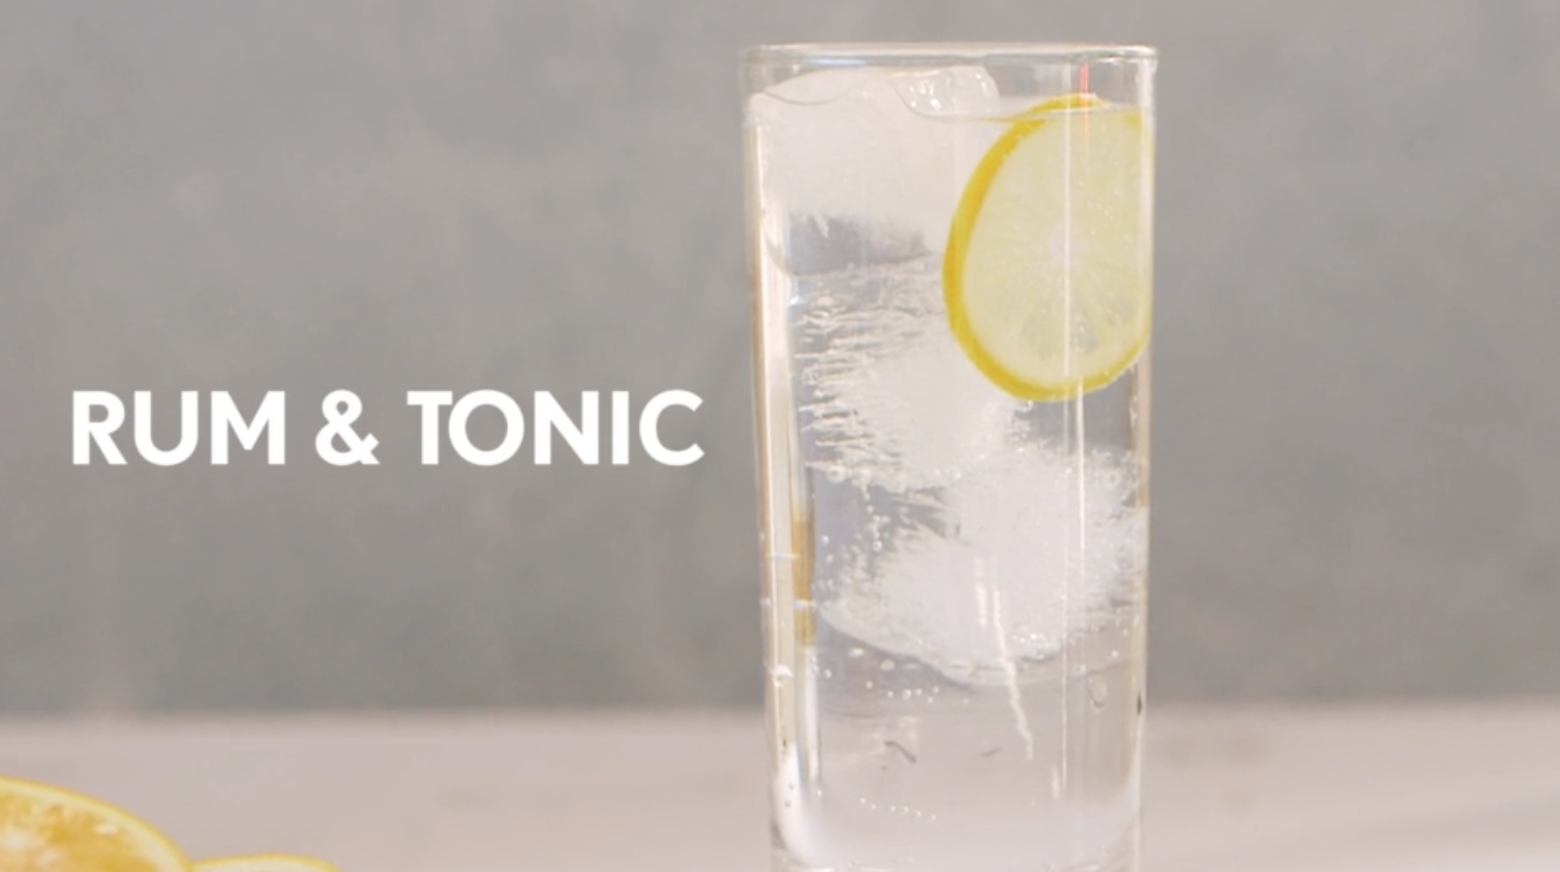 Rum and Tonic